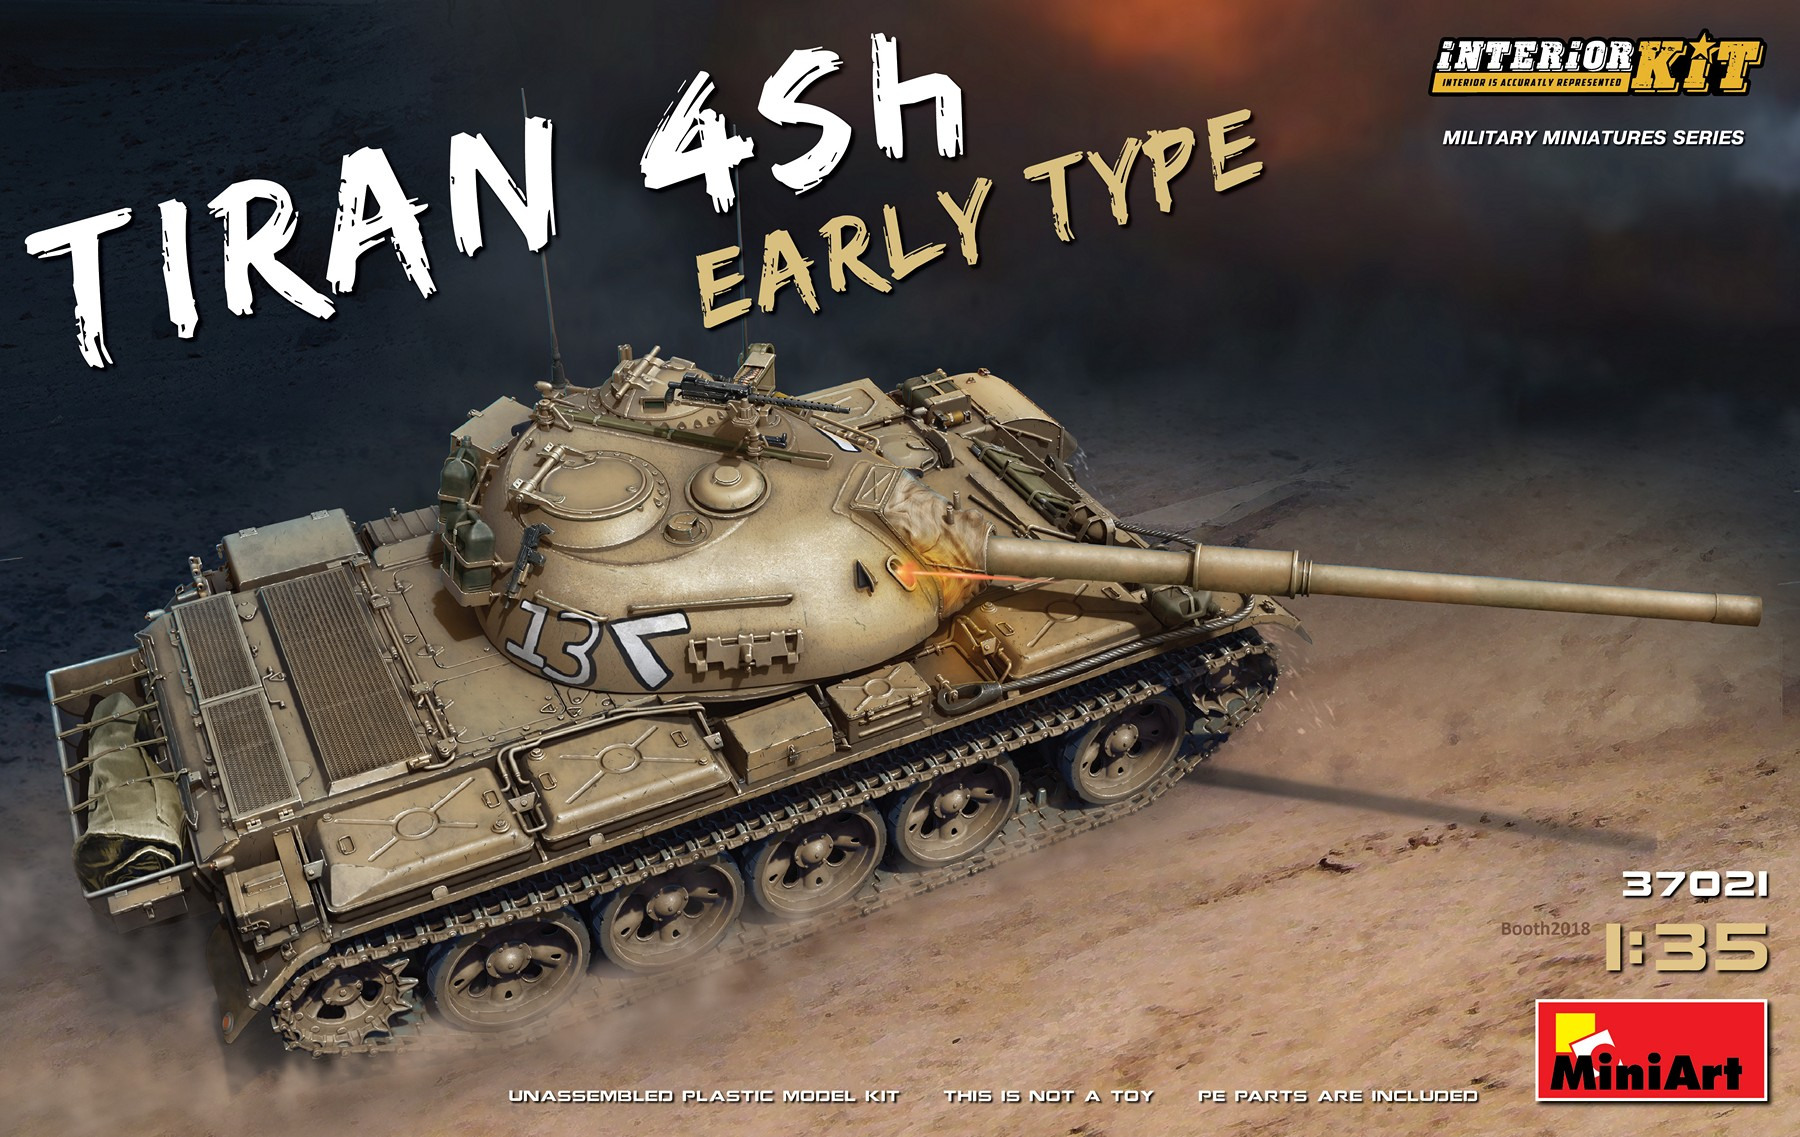 MiniArt Tiran 4 Sh Early Type. Interior Kit (1/35)